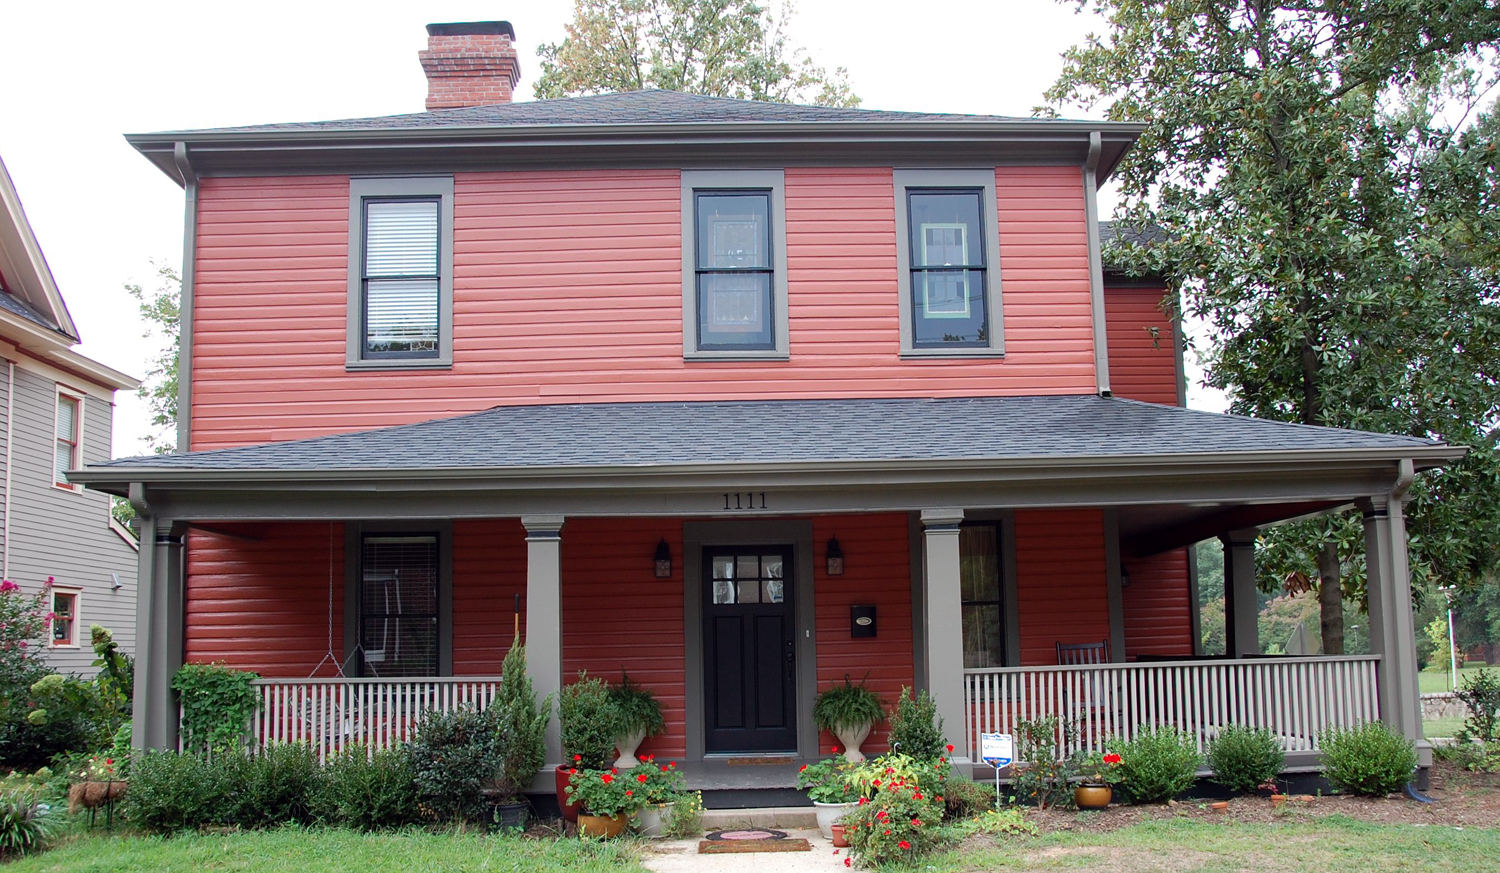 Charmant Exterior Paint Colors Red